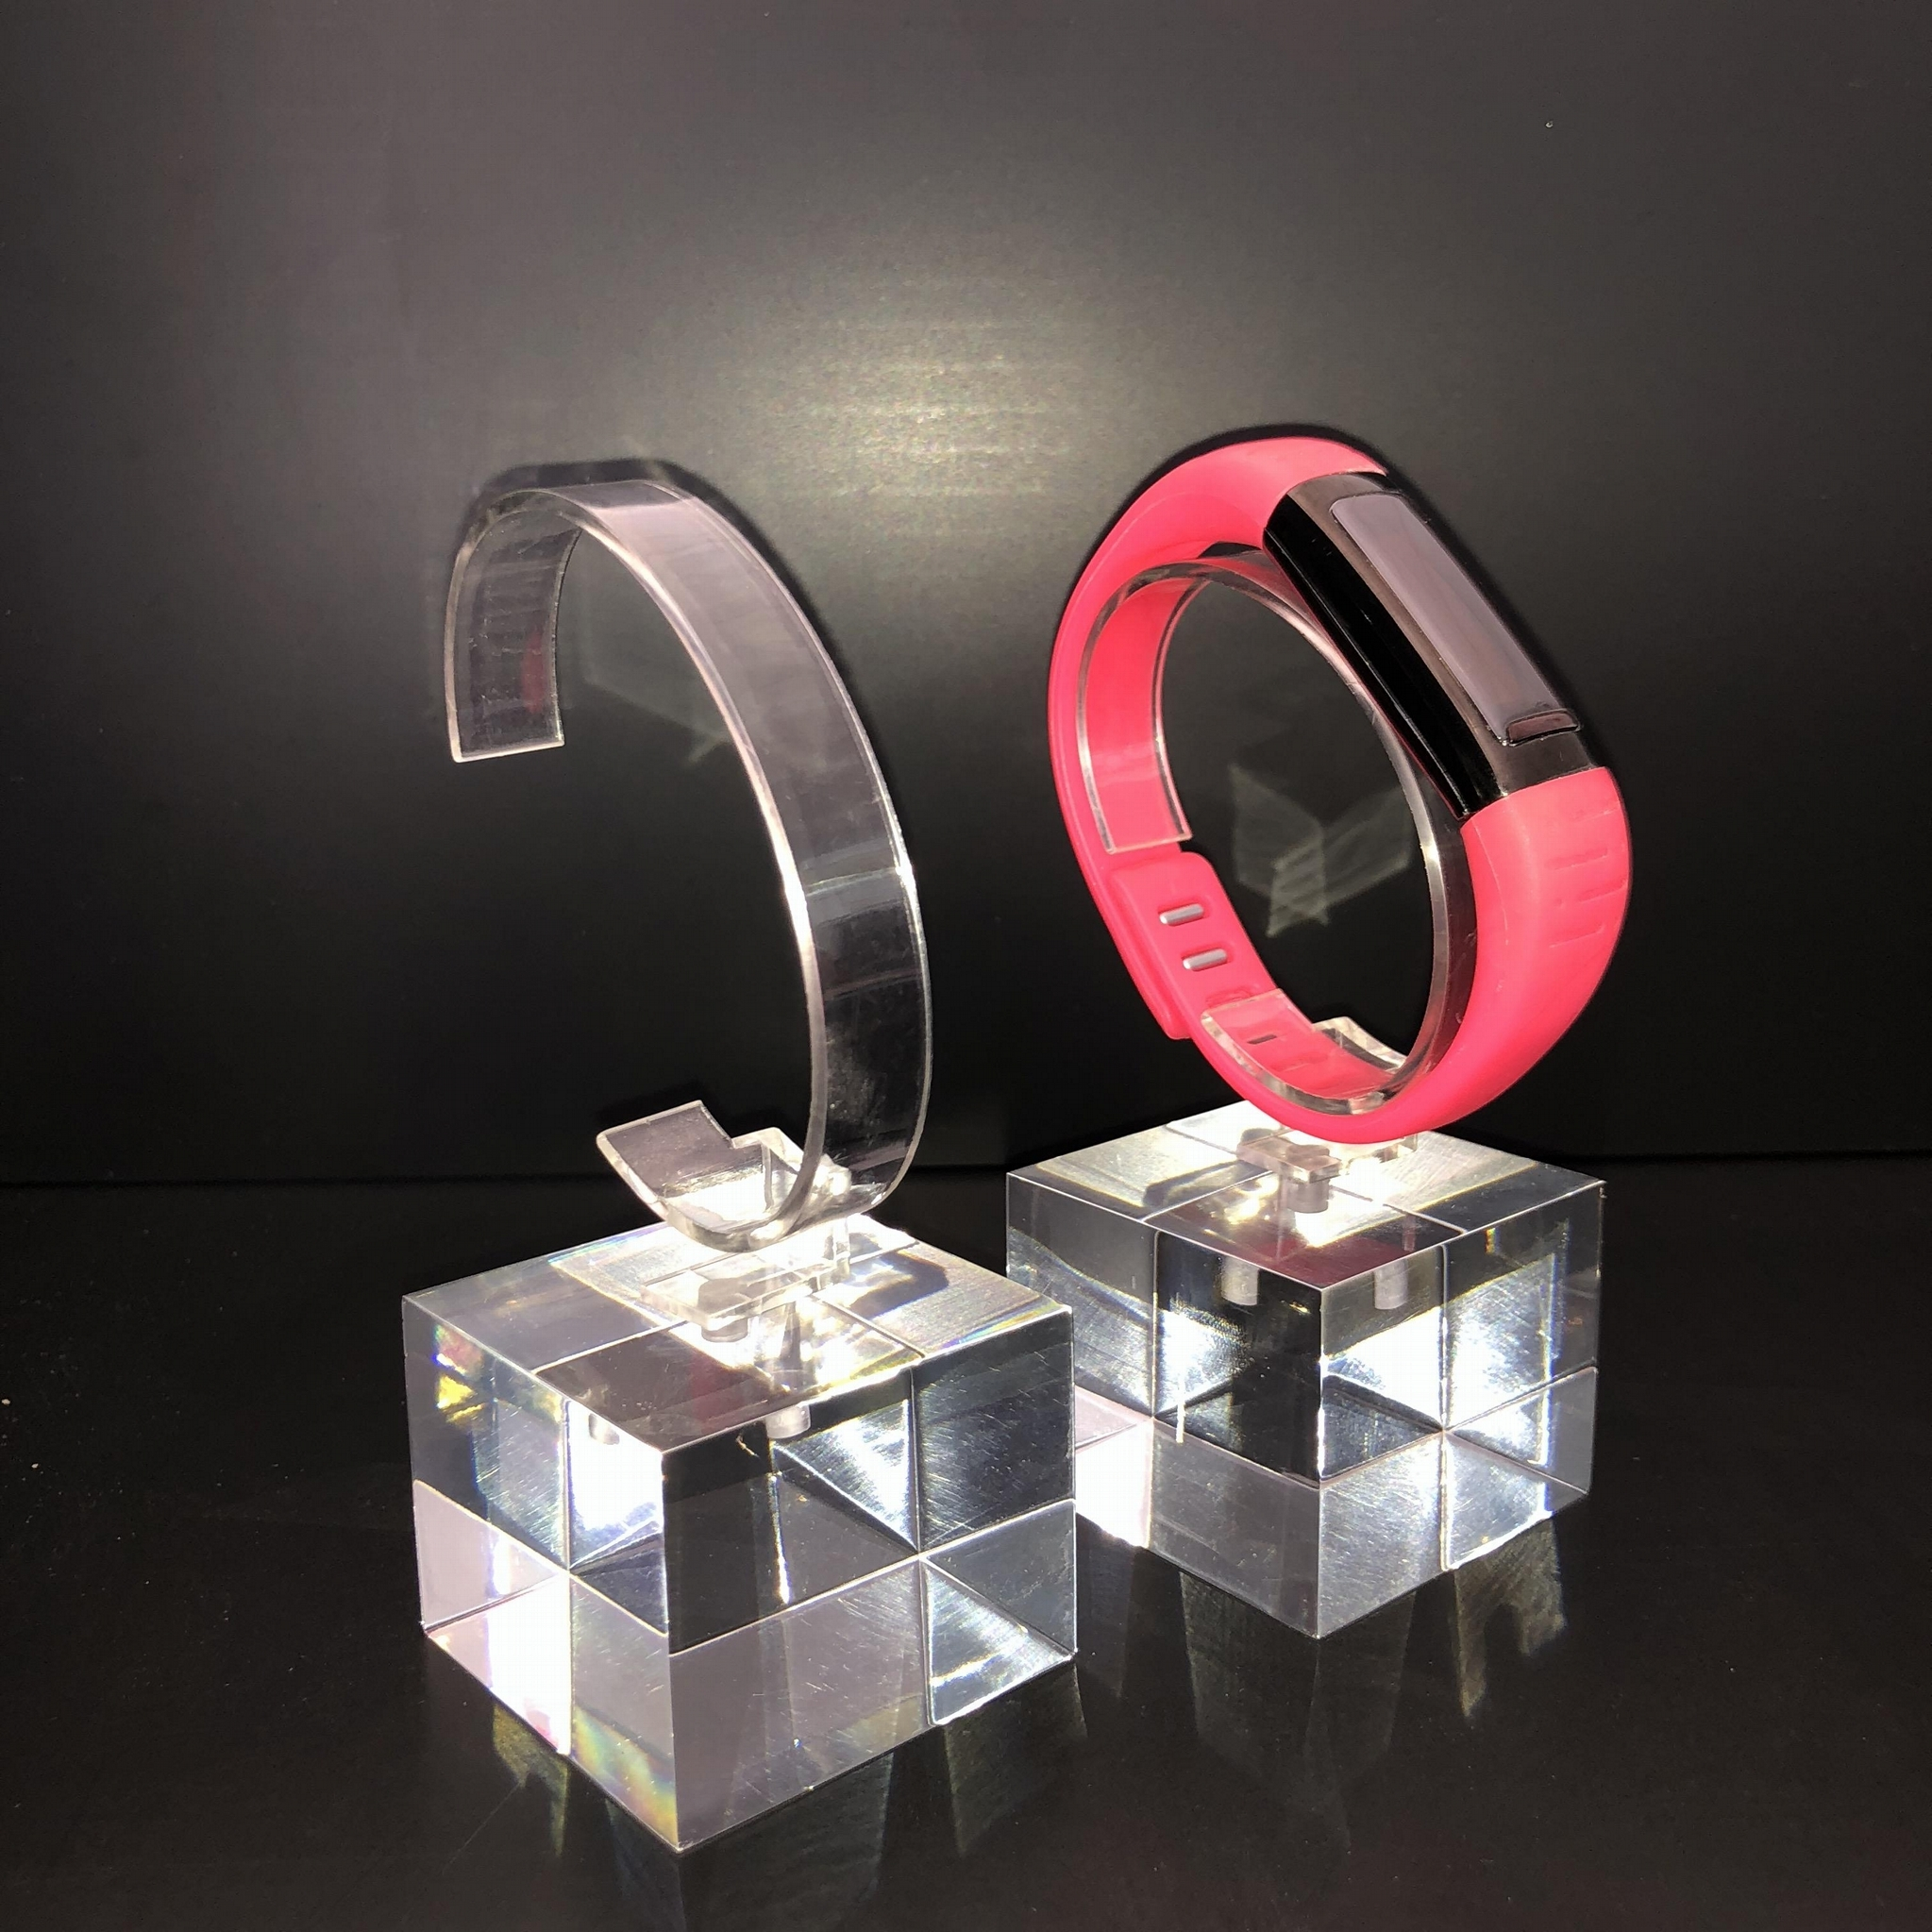 Acrylic Watch display stands,acrylic watch display stand,Production and installation of window display, signage, shop in shop fixtures, products covers cosmetic display case, eyewear display, watch and jewelry display, fashion and leather goods display, window display, shop in shops, signage, LED signage, Neon signage, wine display case, window site checking and installation,Acrylic display stands, Acrylic sign letter ,Acrylic photo Frame,Literature displays, Brochure holders, Acrylic sign holder,Menu stand,Promotion gifts,Cell phone display stands, Acrylic Easel Book Holder Rack,Acrylic display case/Box ,Diecast car display case ,Trophies, Artistic ,POP display stands,Acrylic coaster,Jewelry display stand,dome display, eyewear display stands,LED lighting  Box,Poster display,LED display stands,Watch display stand,Counter top display stand,POP stand,POP display,Floor Standing Unit ,PETG,PVC,Vacuum forming,Window display stand,Acrylic Award,Cosmetic display,metal display rack, acrylic display rack.wooden display rack,retail shop display stand.